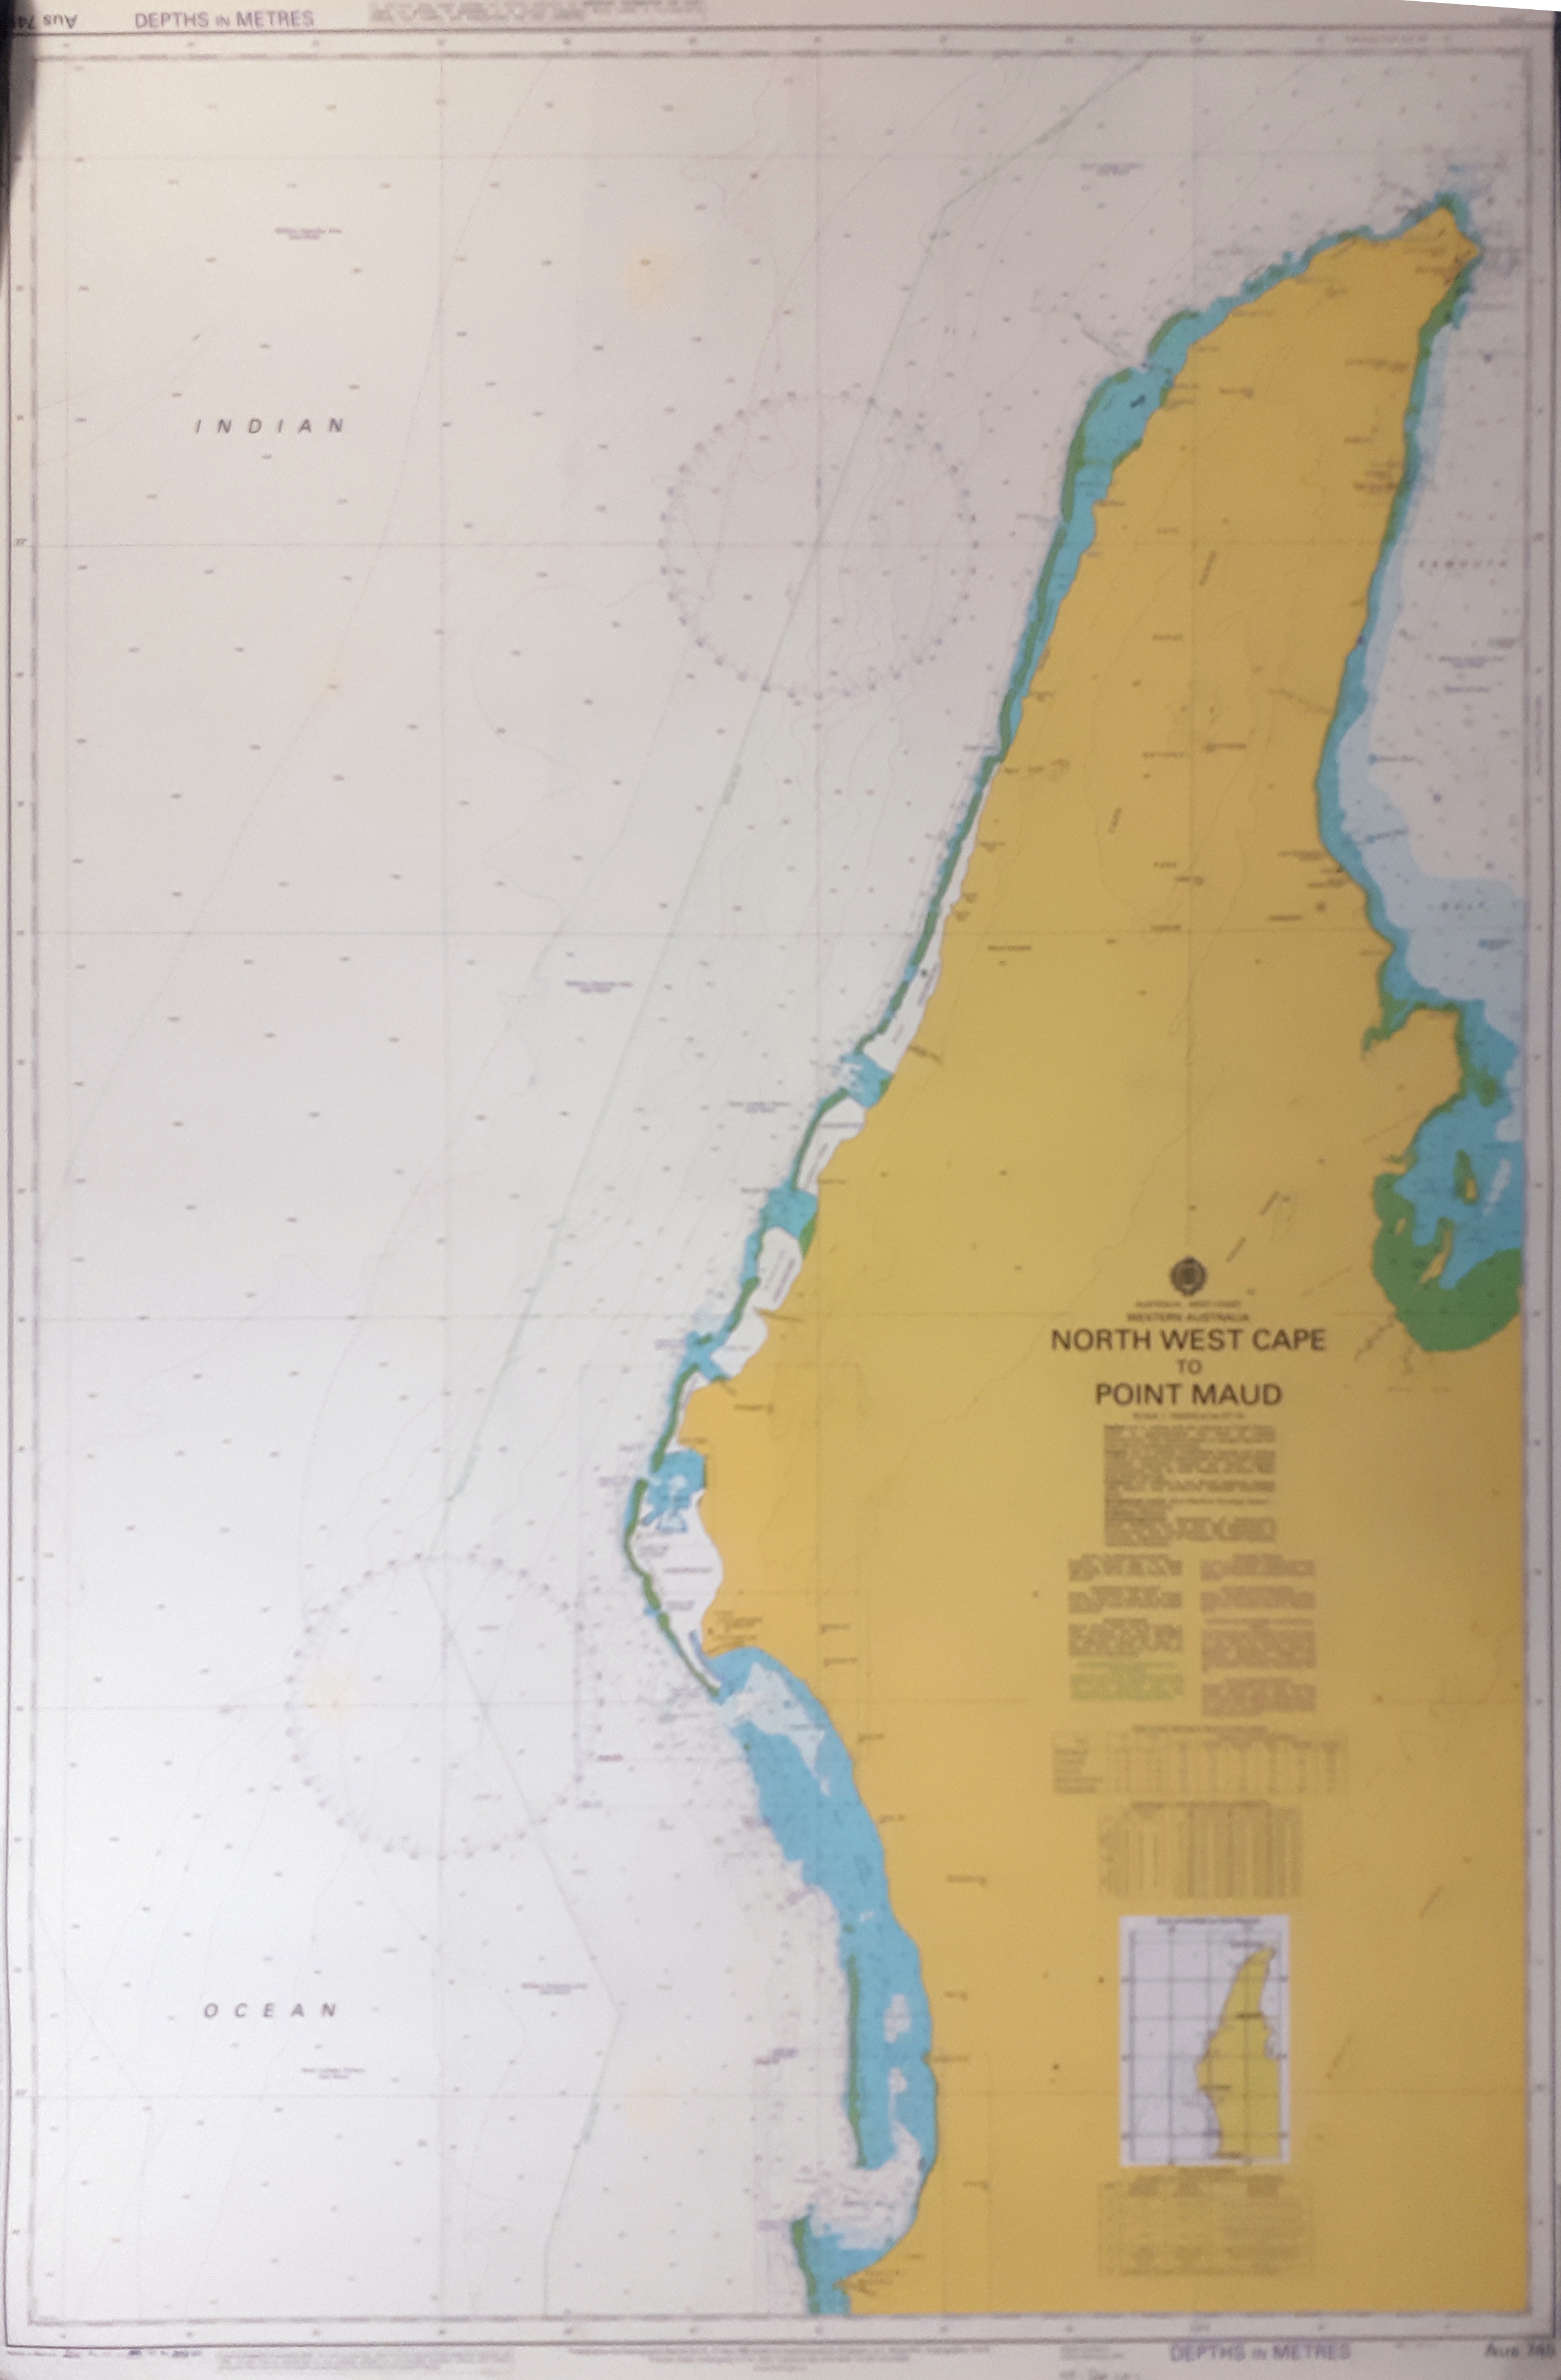 40. North West Cape to Point Maud